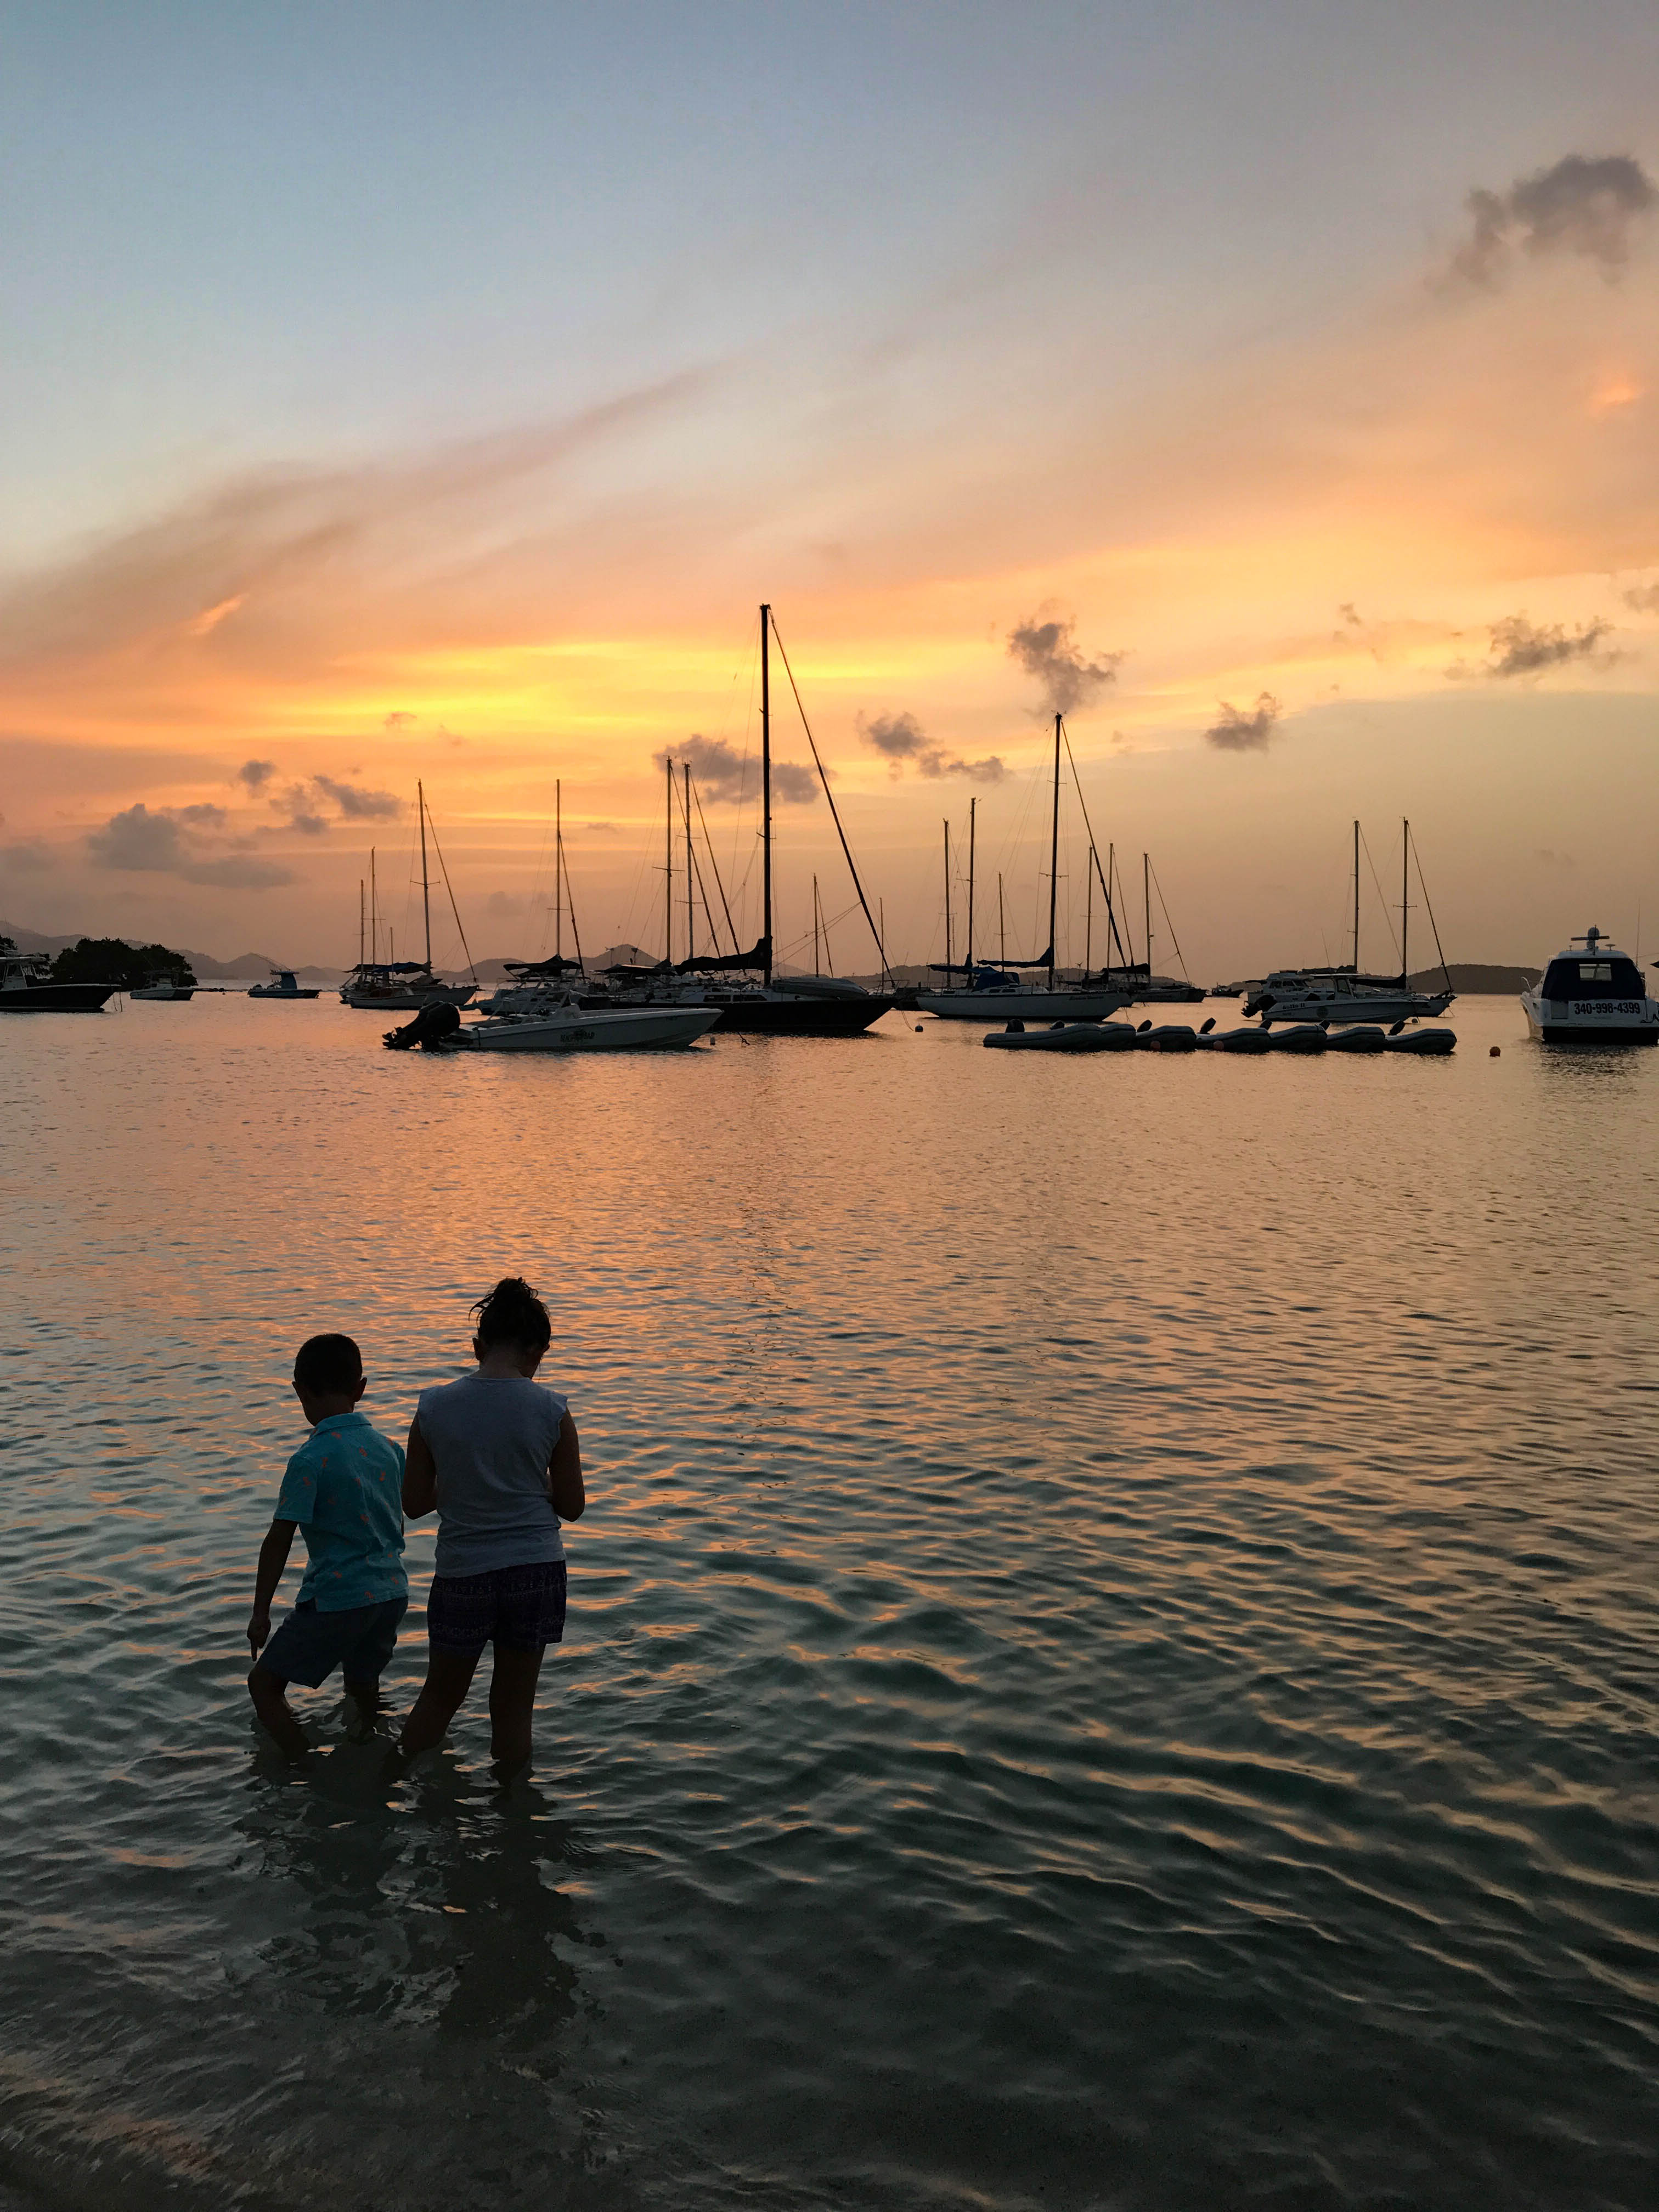 The ultimate guide to the best experiences for families in St. John, USVI